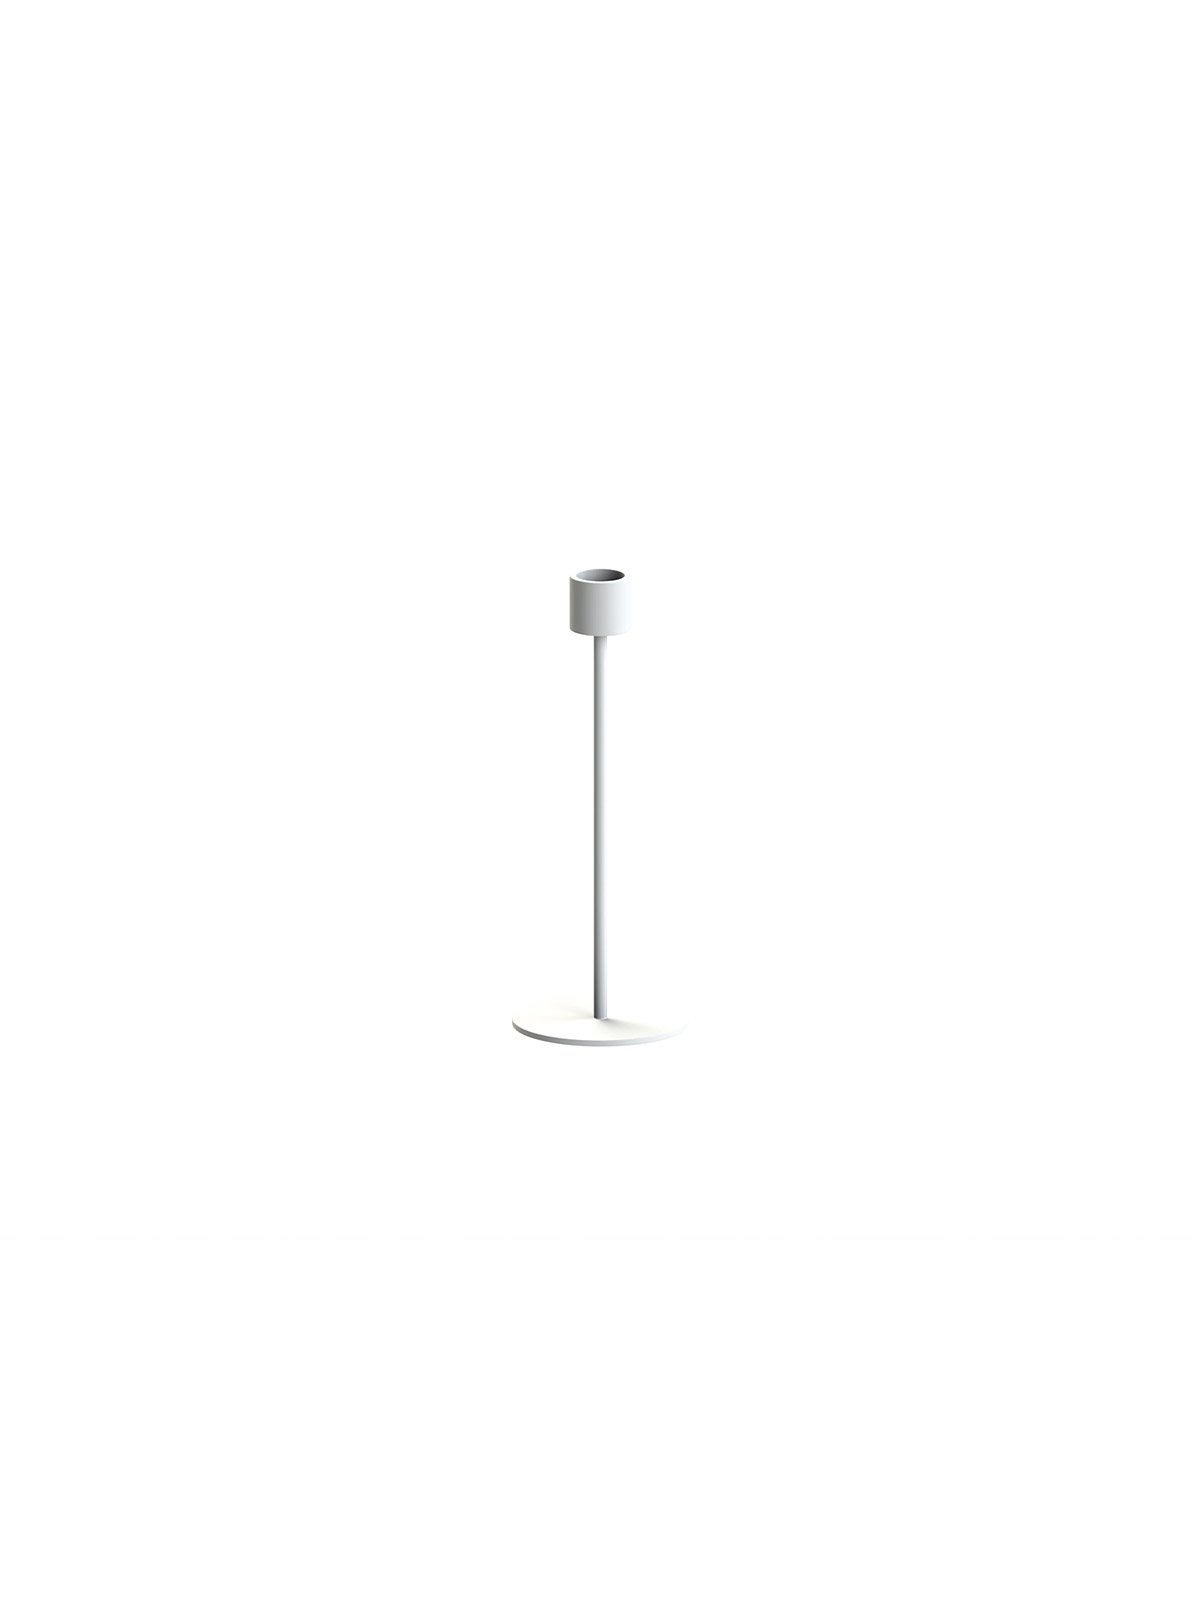 candlestick_small_white_product1_miljuu.com_1304-015